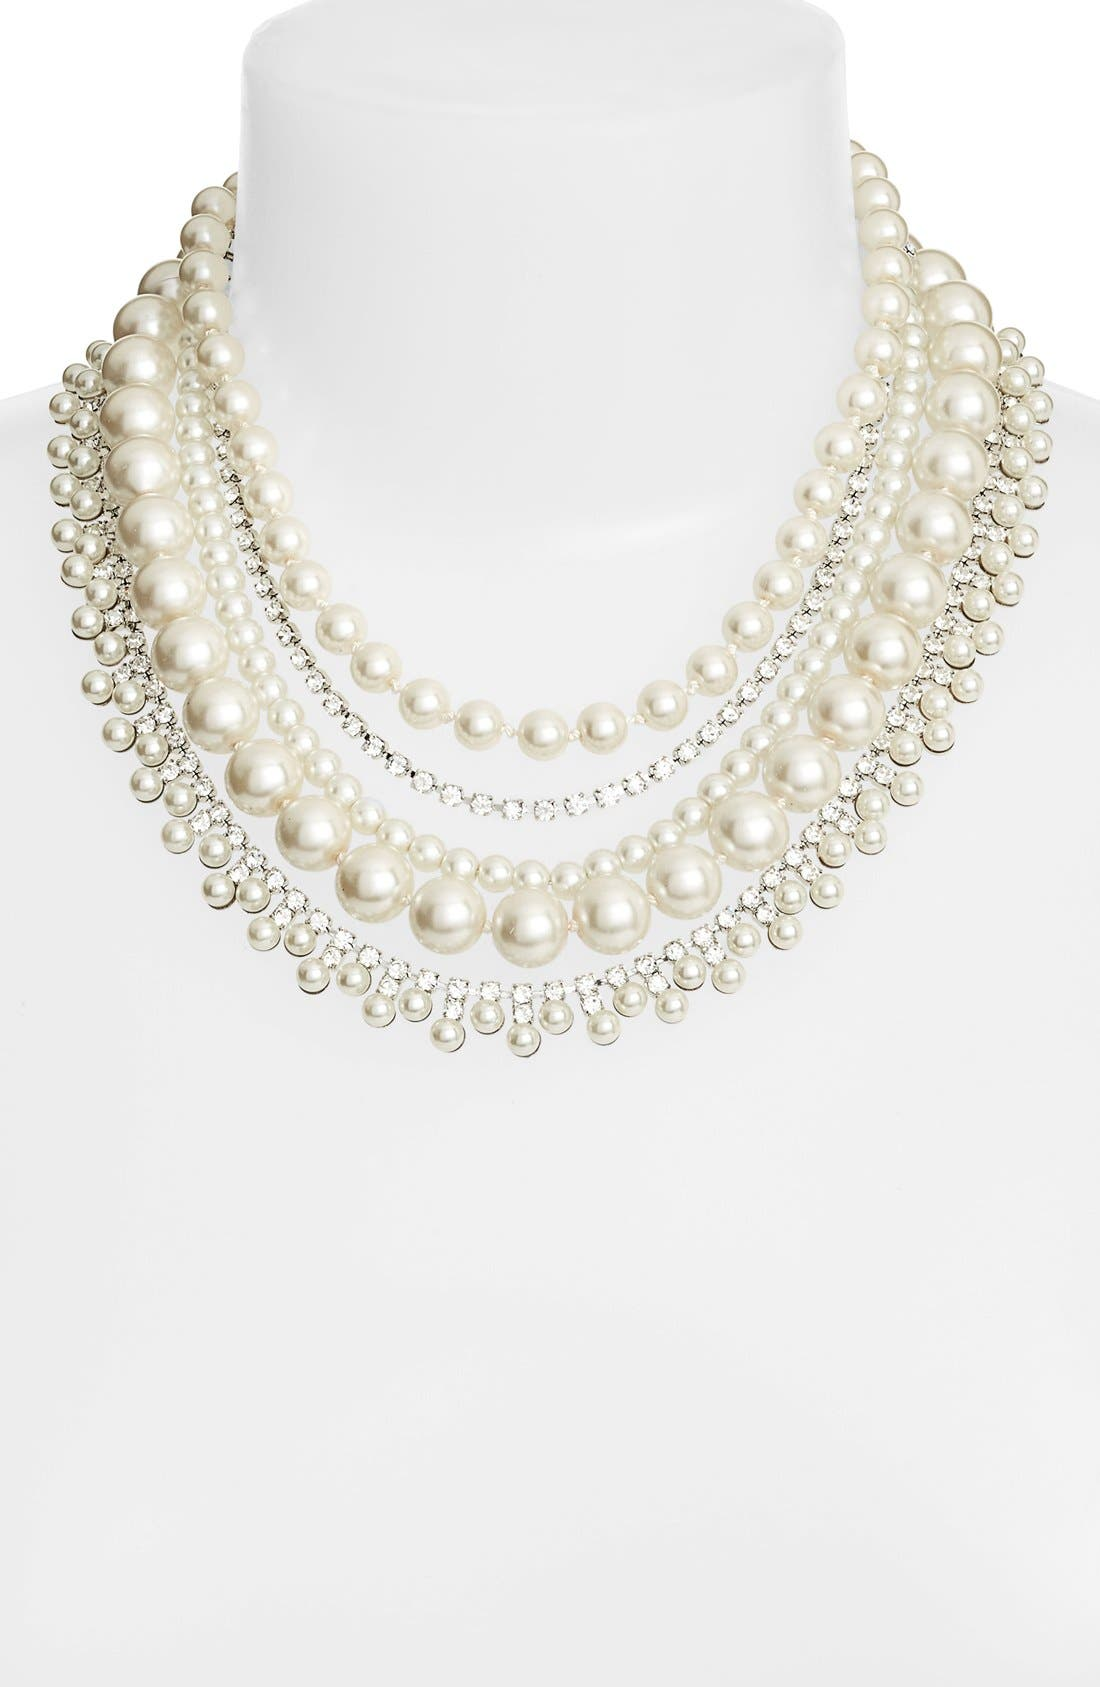 Crystal & Imitation Pearl Multristrand Necklace,                             Alternate thumbnail 2, color,                             Cream